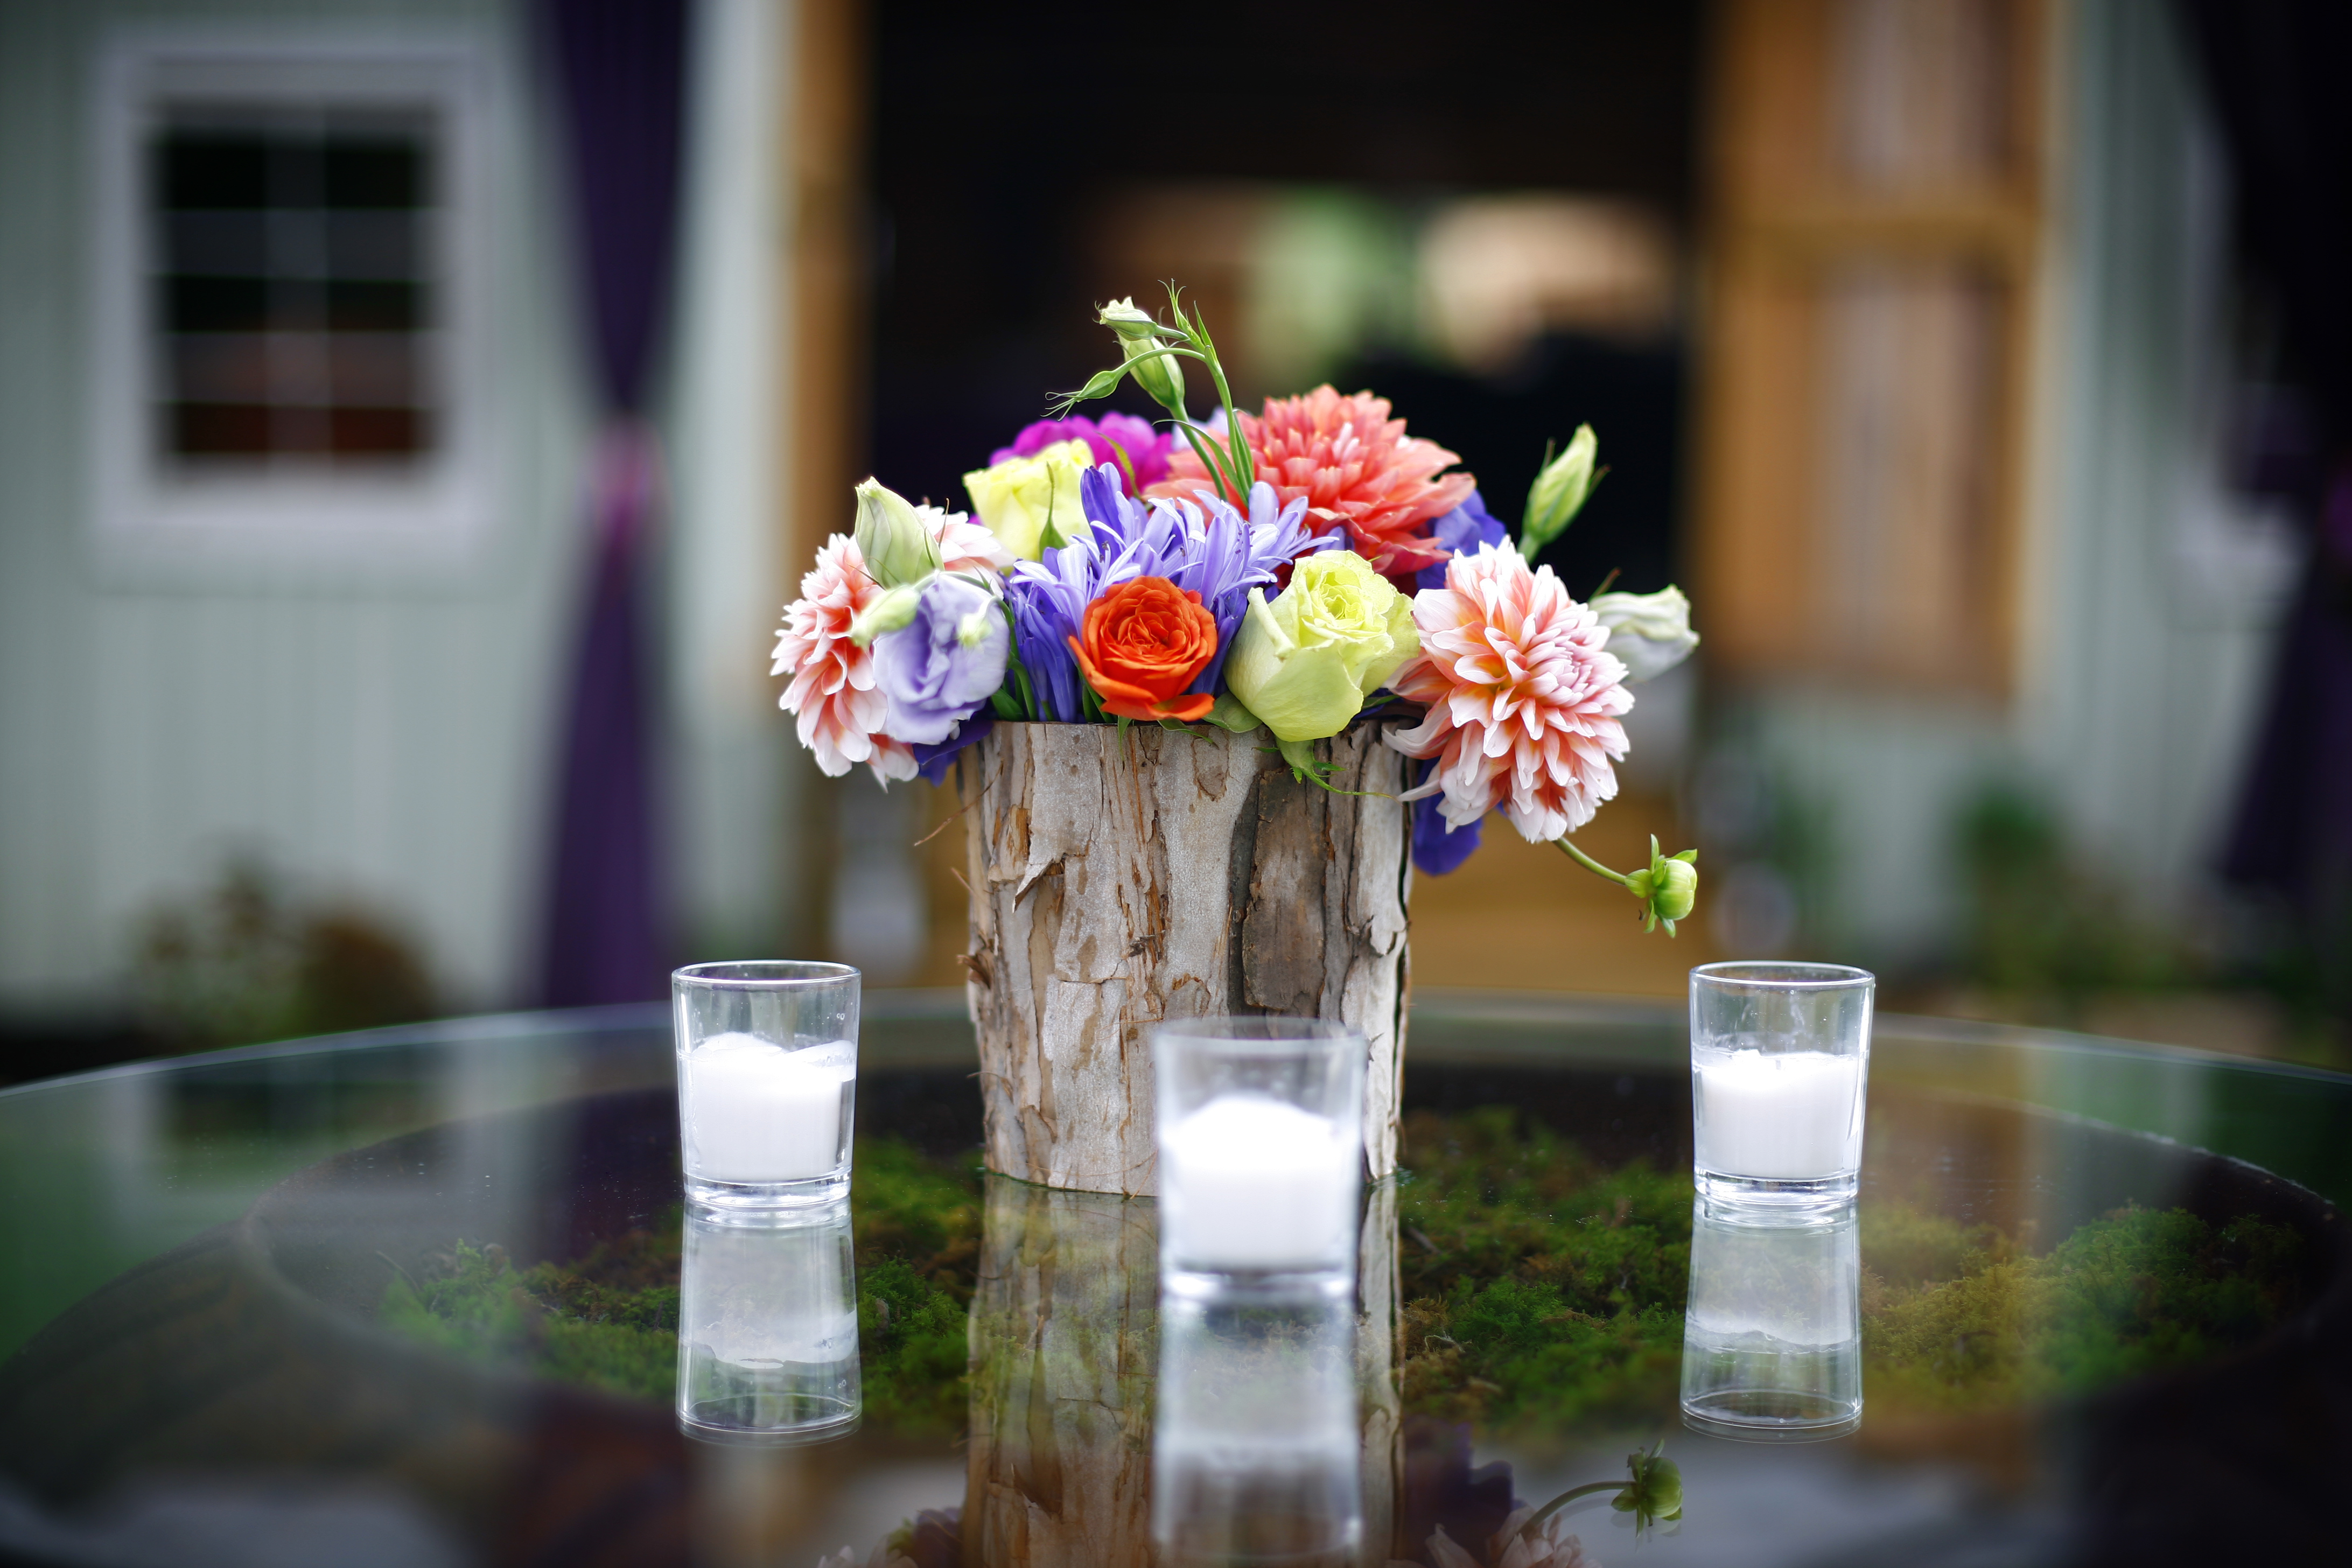 Inspiration, Reception, Flowers & Decor, orange, purple, Rustic, Outdoor, Flowers, Rustic Wedding Flowers & Decor, Board, Farm, Wood, Southall eden, Log